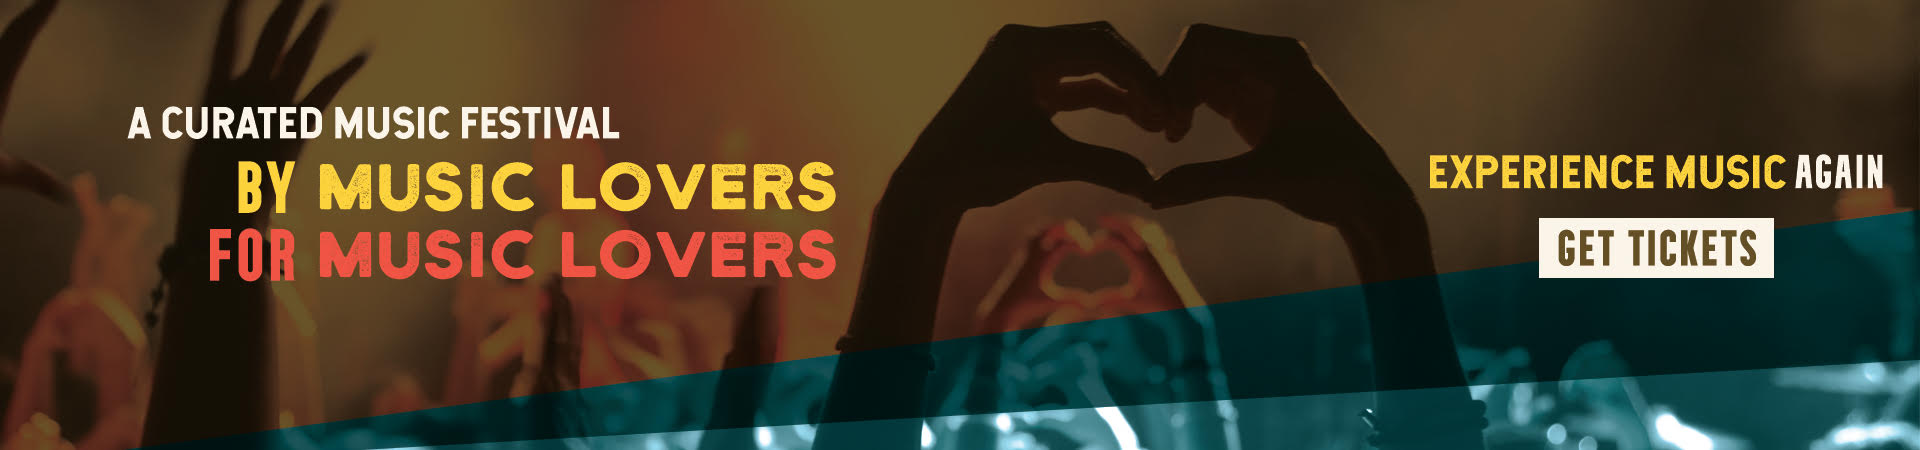 Homepage Banner - A curated music festival by music lovers, for music lovers. Experience music again. Hands are shown making a heart.